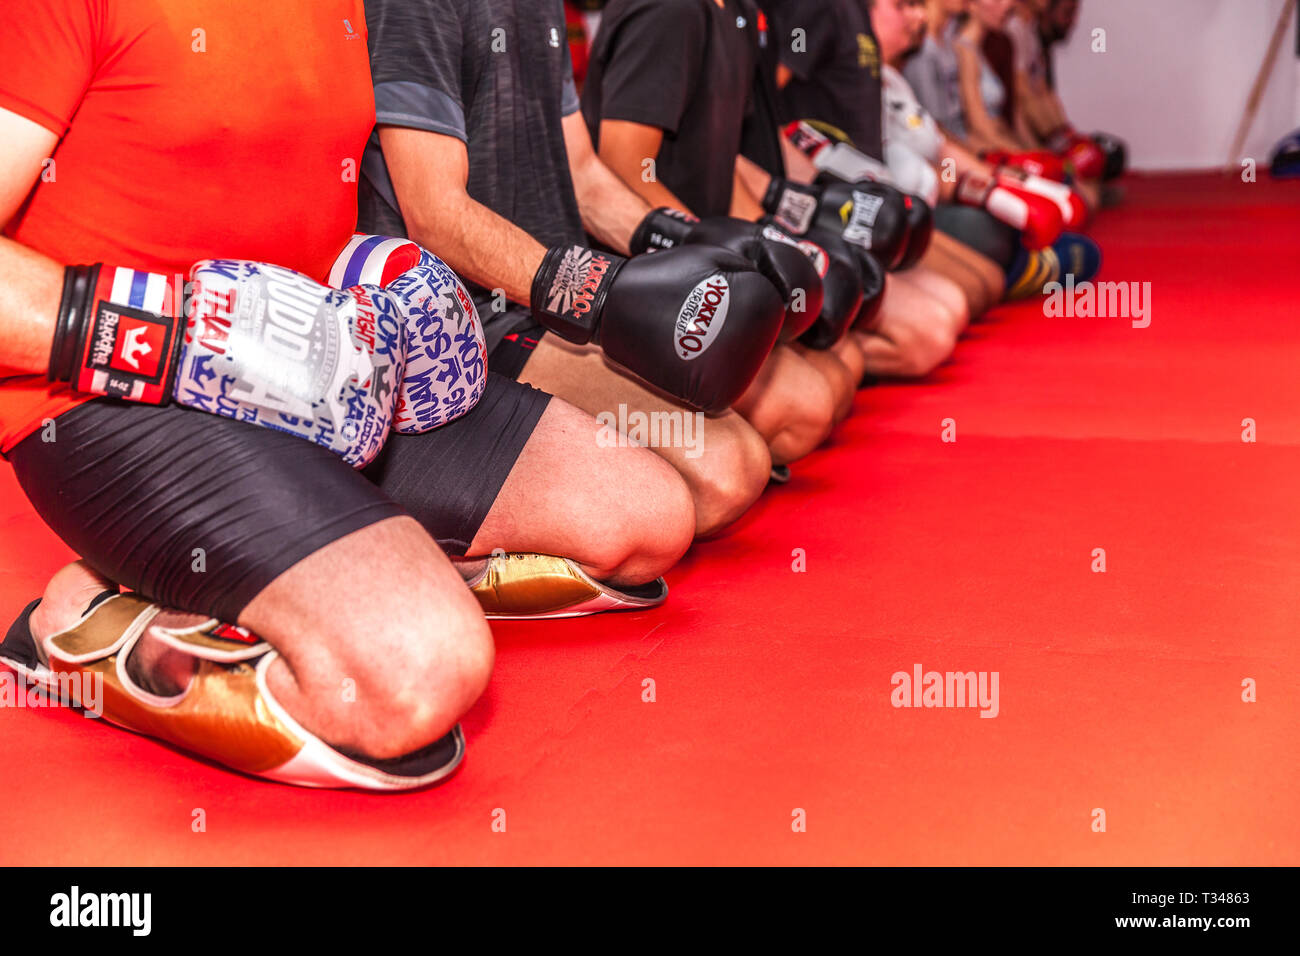 kick boxing training in a gym Stock Photo